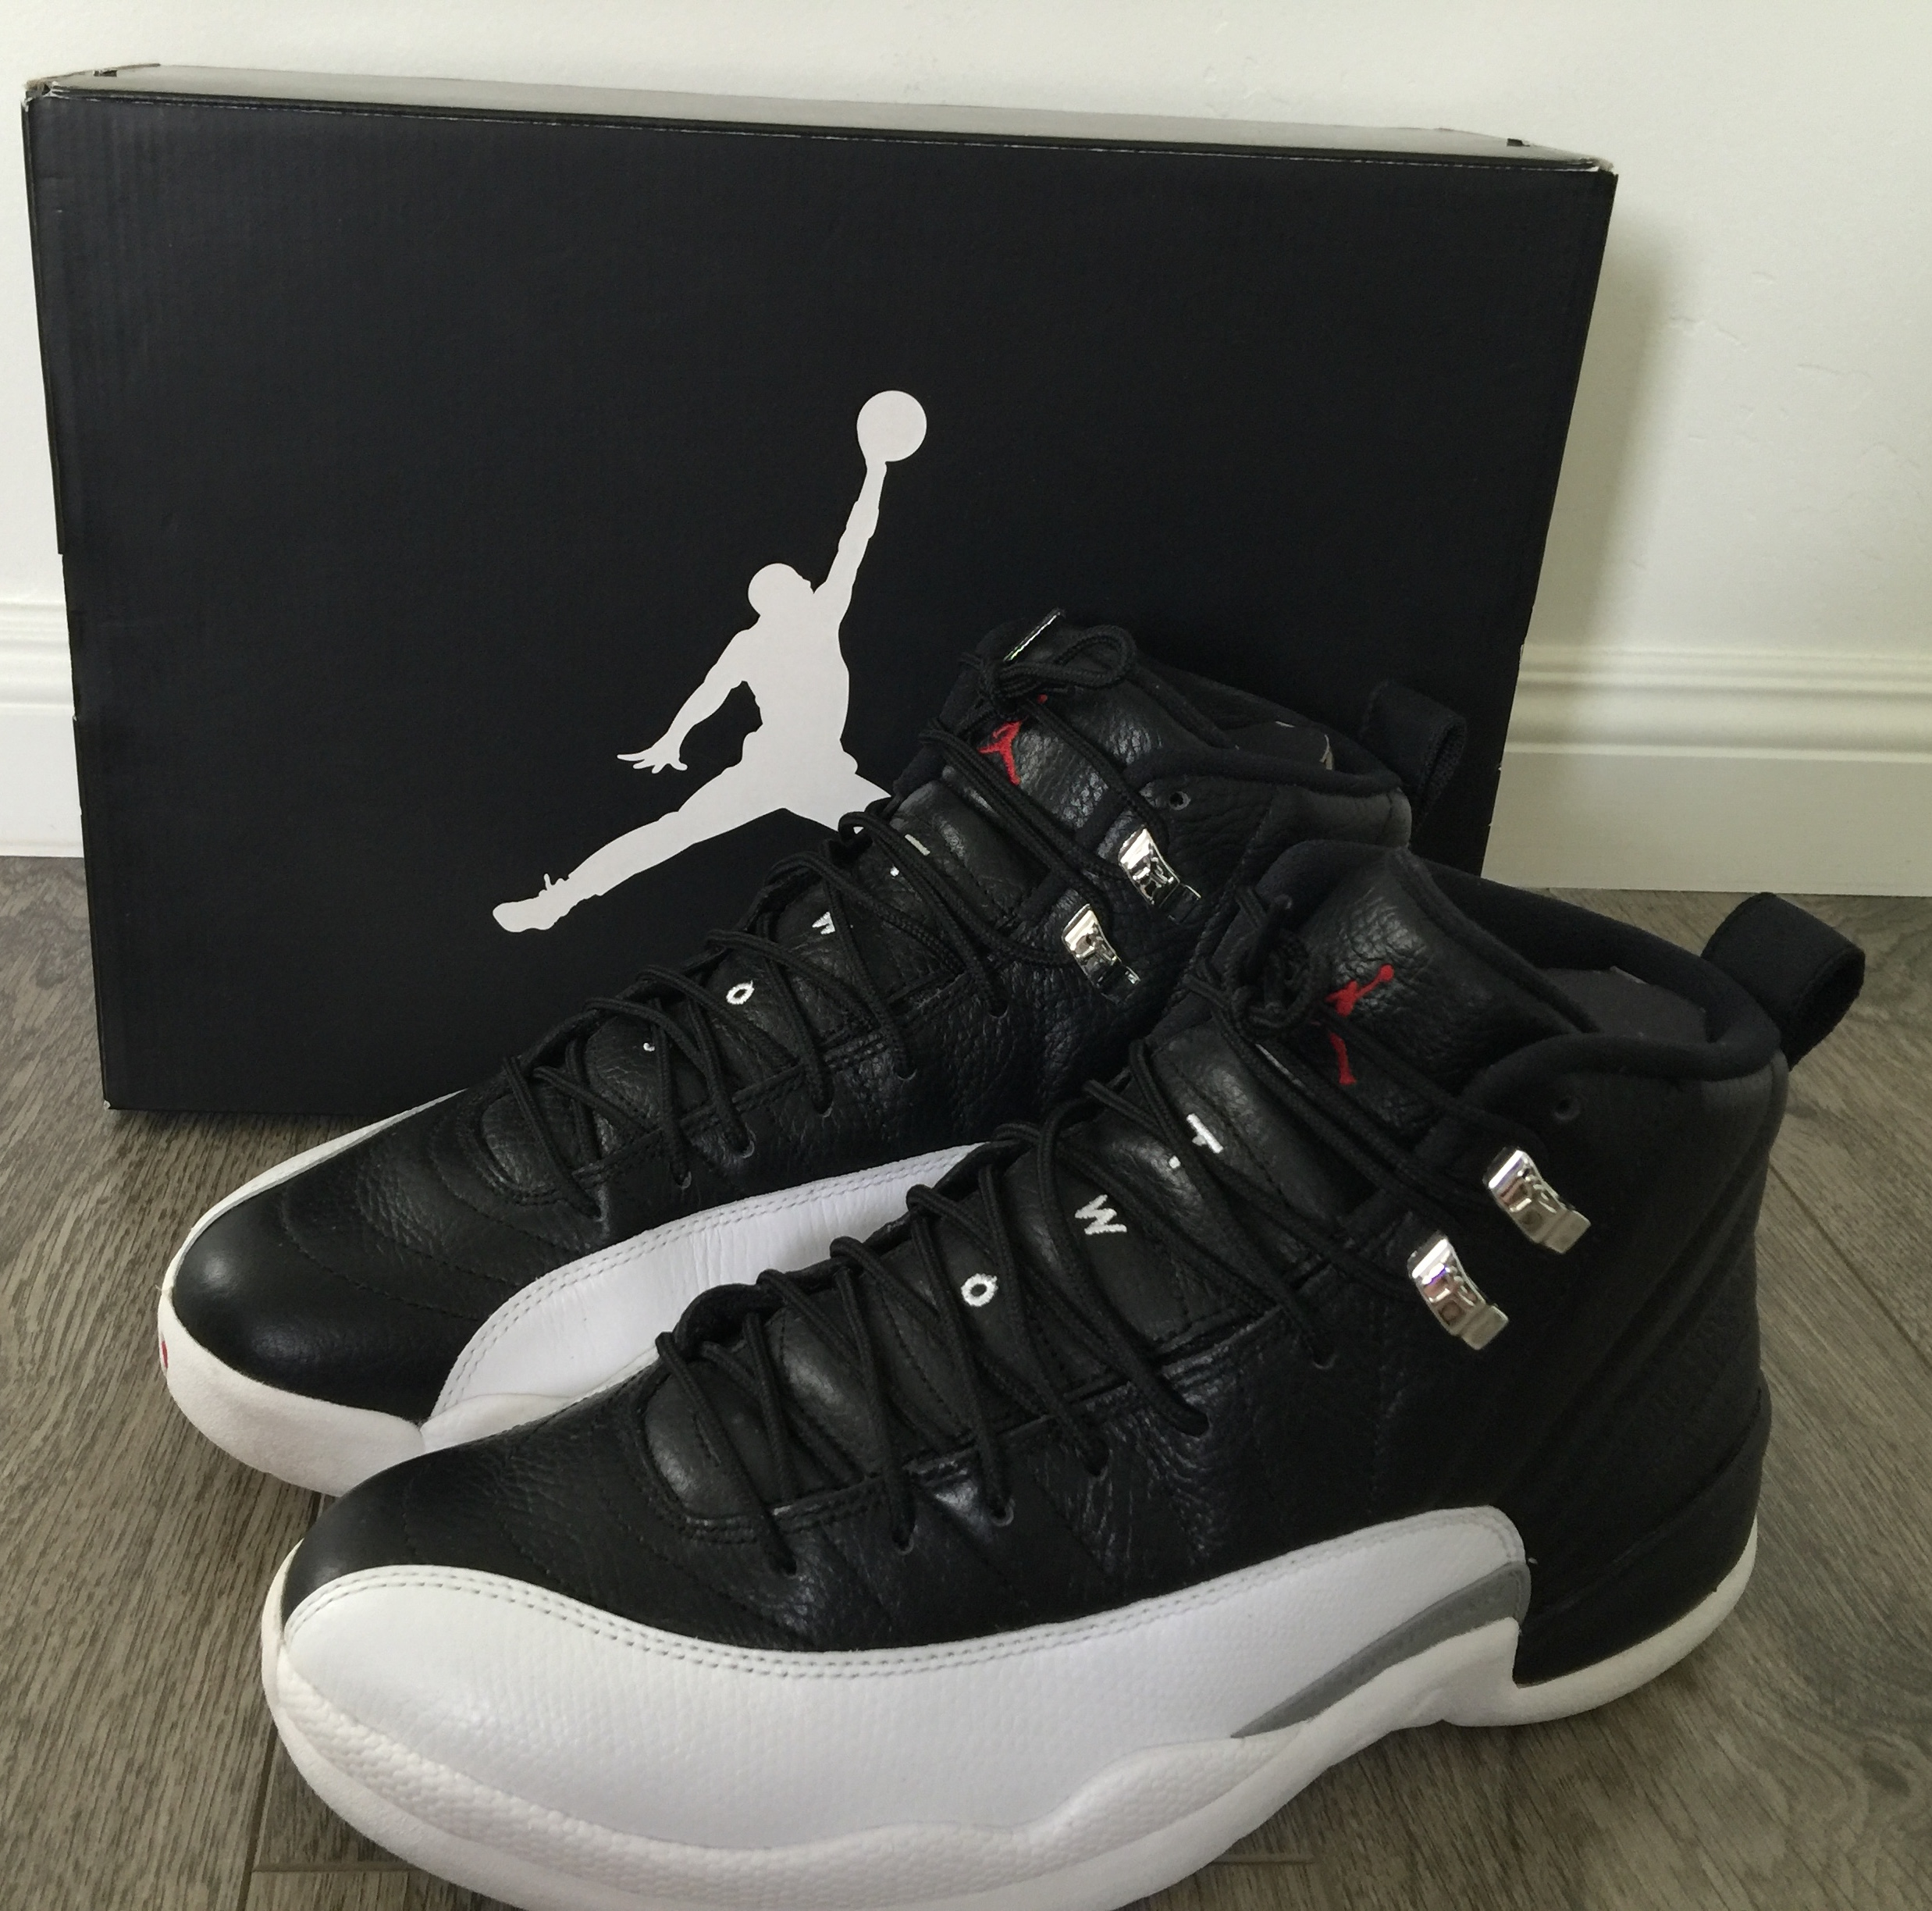 cheaper 15026 c75a9 Air Jordan Retro XII